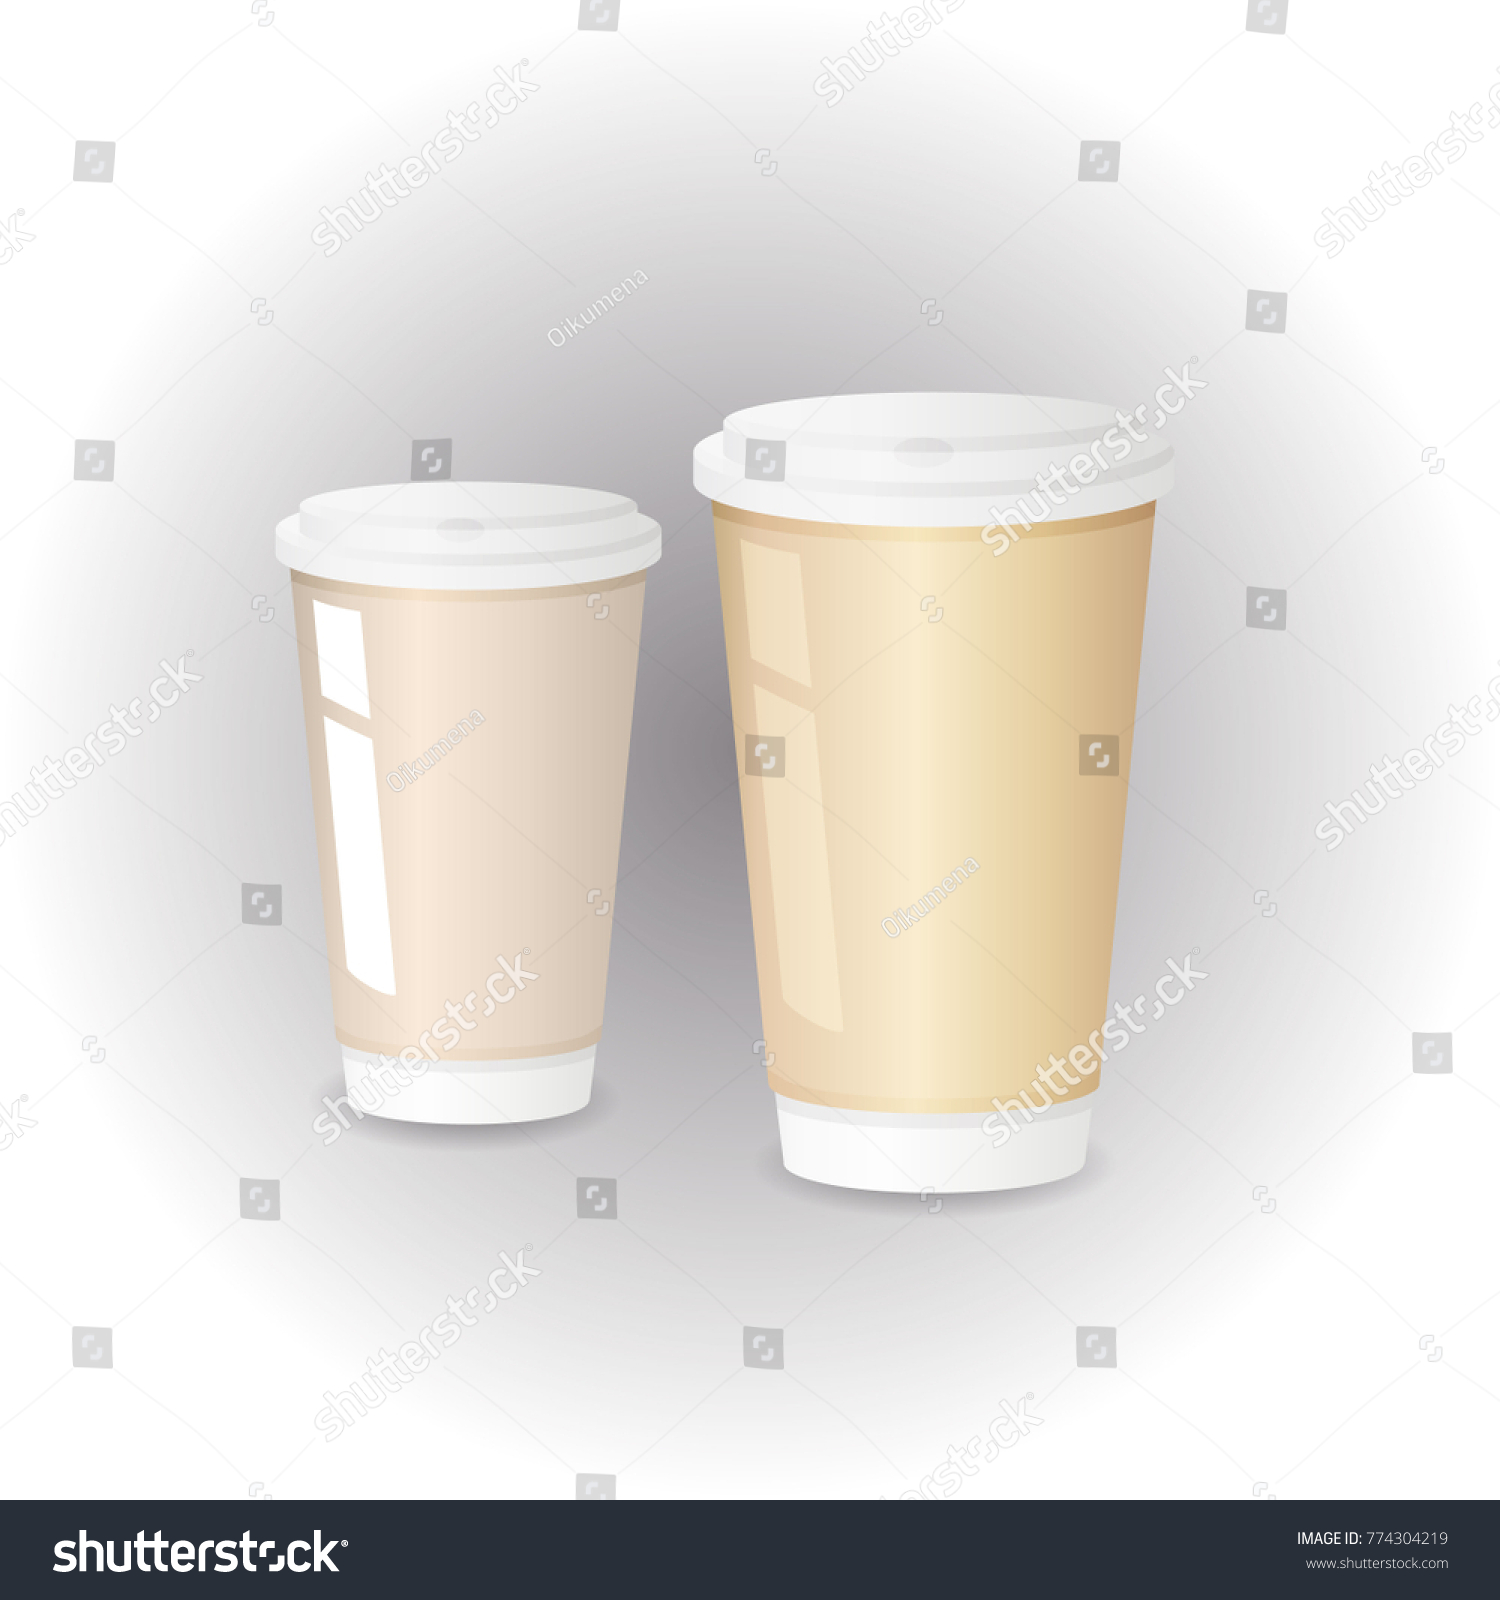 Paper Cup For Hot DrinksTemplate DesignCoffee Vector